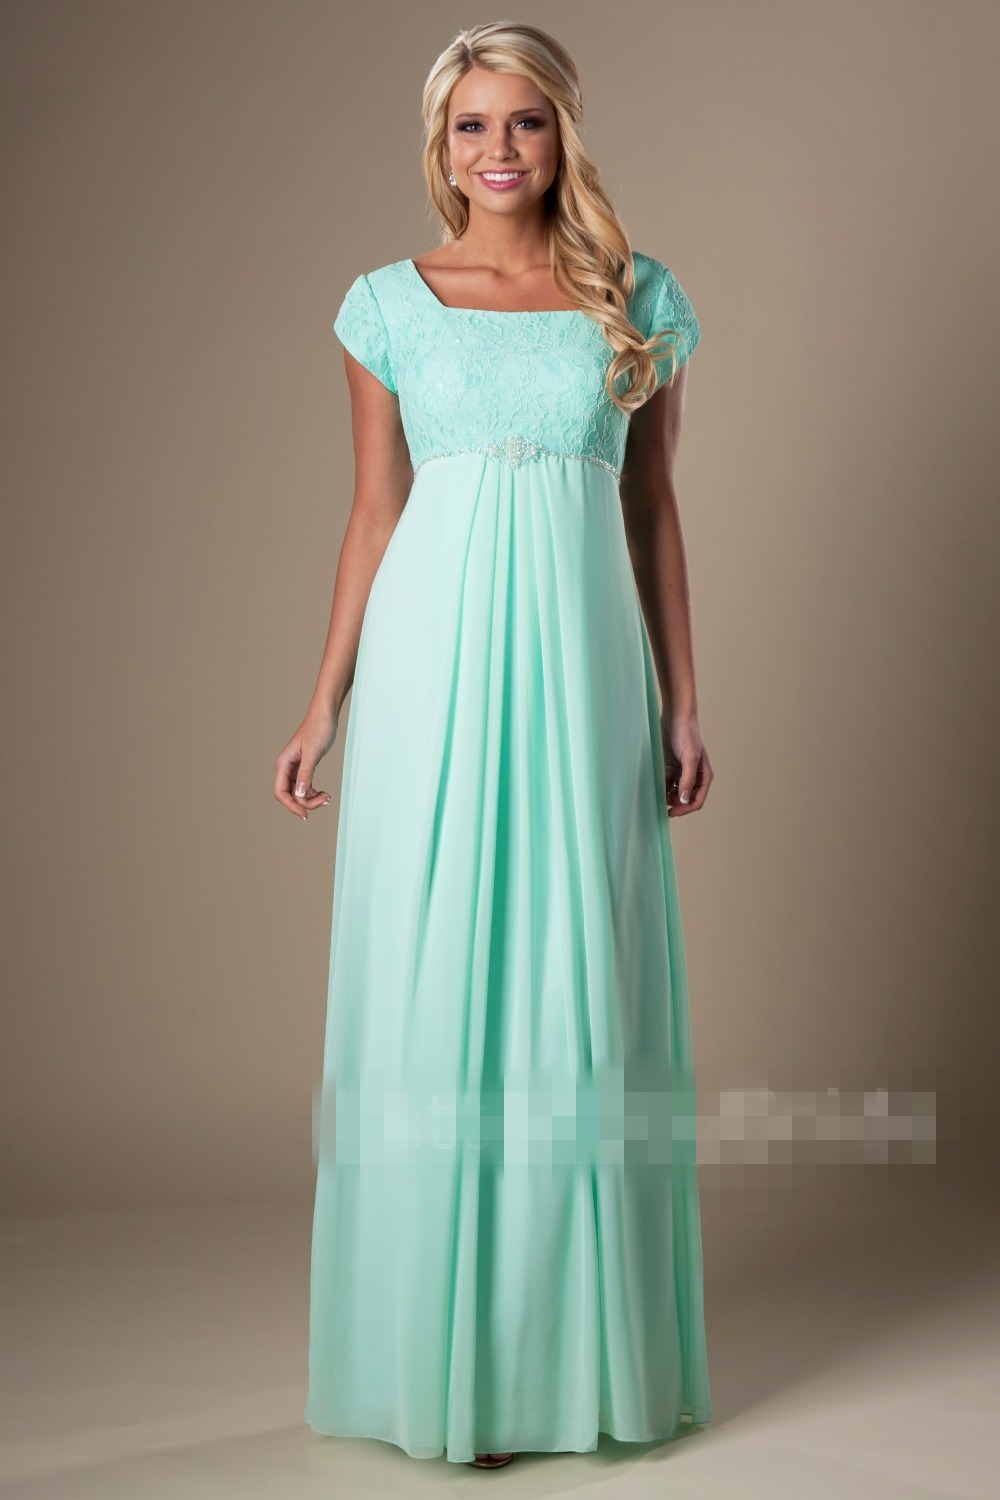 Mint Maternity Modest Bridesmaid Dresses With Sleeves Long  Lace Chiffon A-line Empire Waist Dresses For Pregnant Women Custom